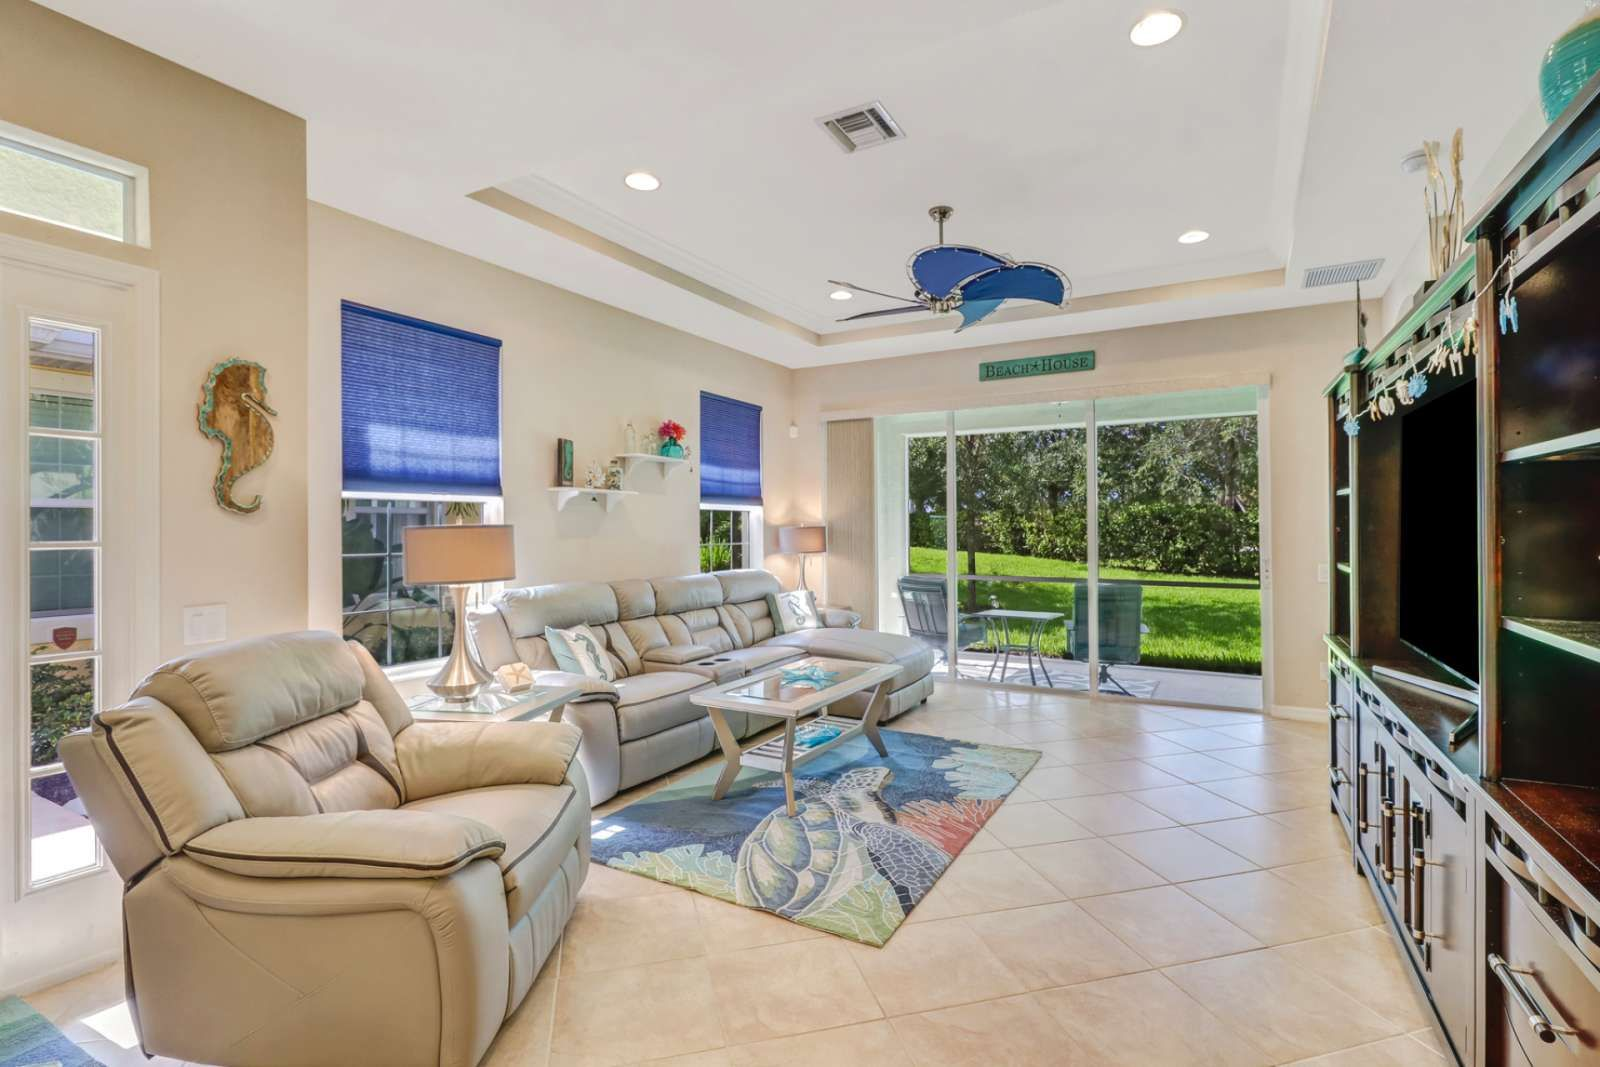 Fort Myers Vacation Rental Close To Beach Lovely Villa Gated Community Full Amenities Dining Shopping Villa Rental Vacation Home Rentals Vacation Rental